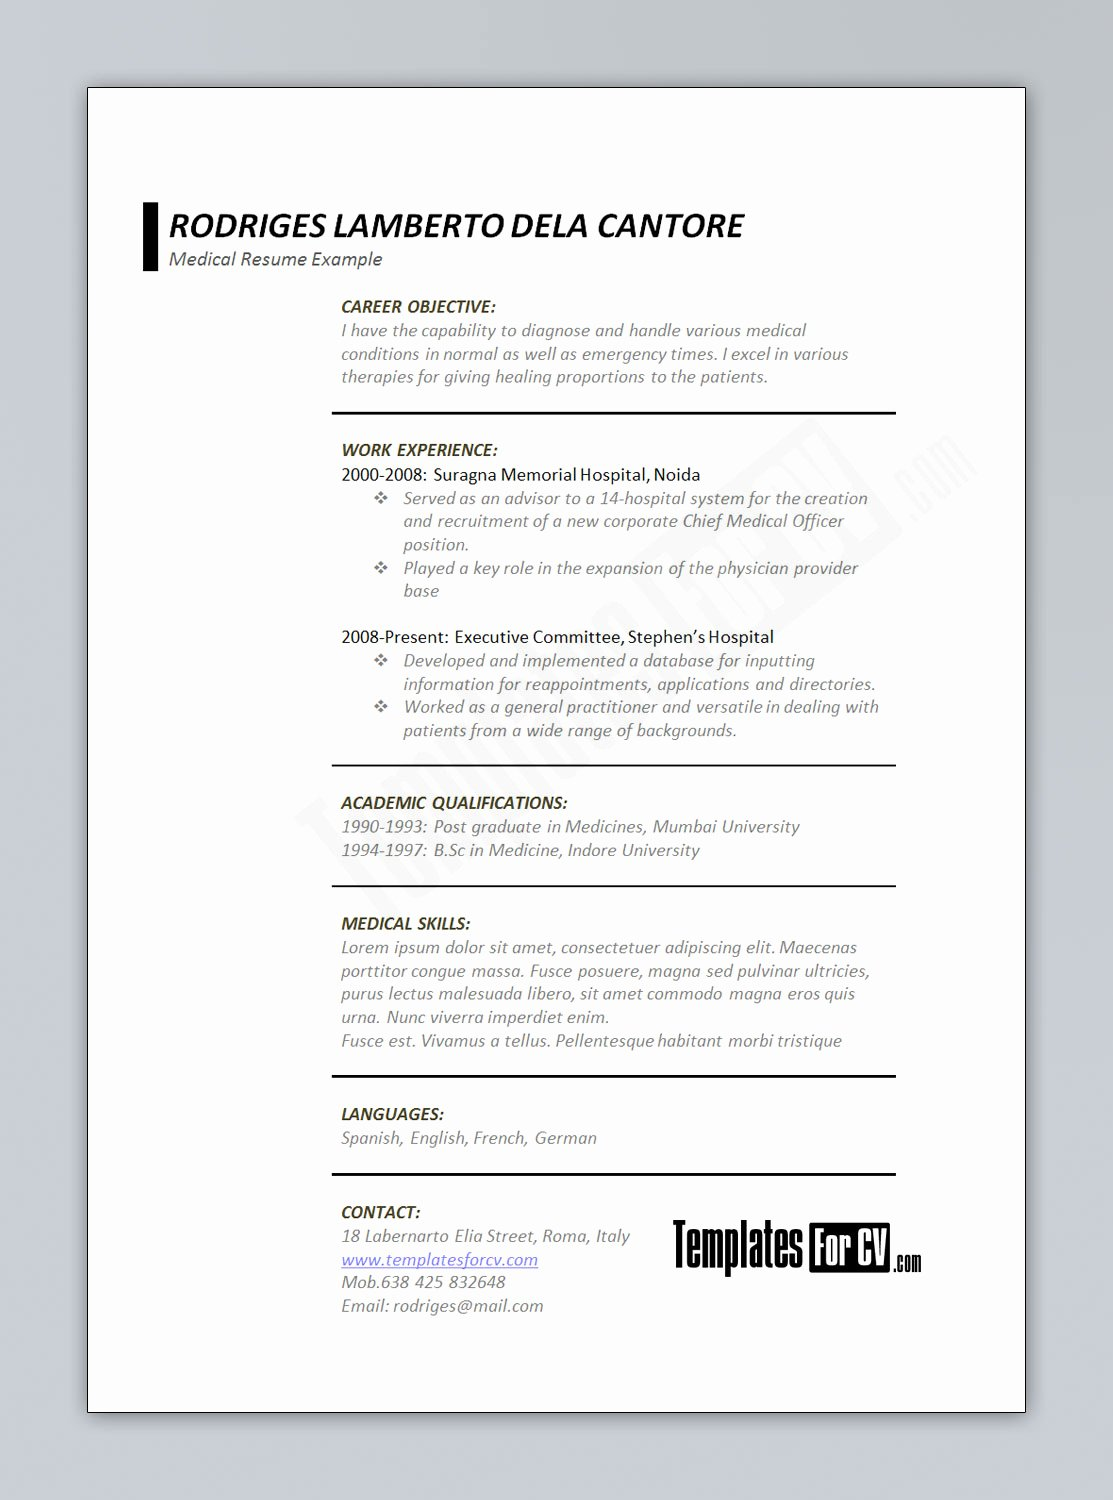 Medical Resume Template Free New Template for Cv – Medical